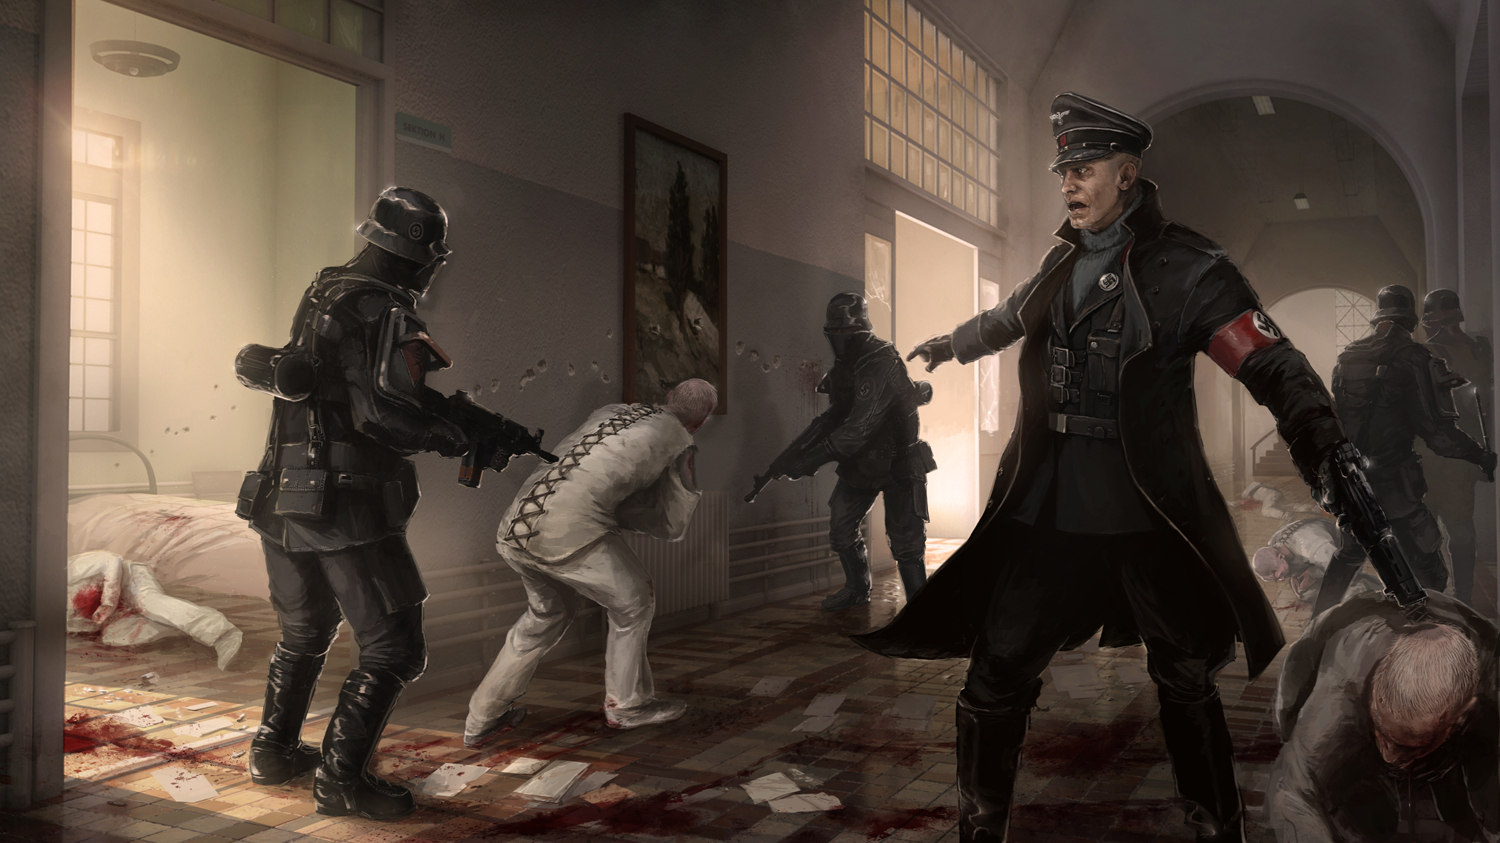 Wolfenstein: The New Order Gameplay Trailer shows Stealth vs. Mayhem